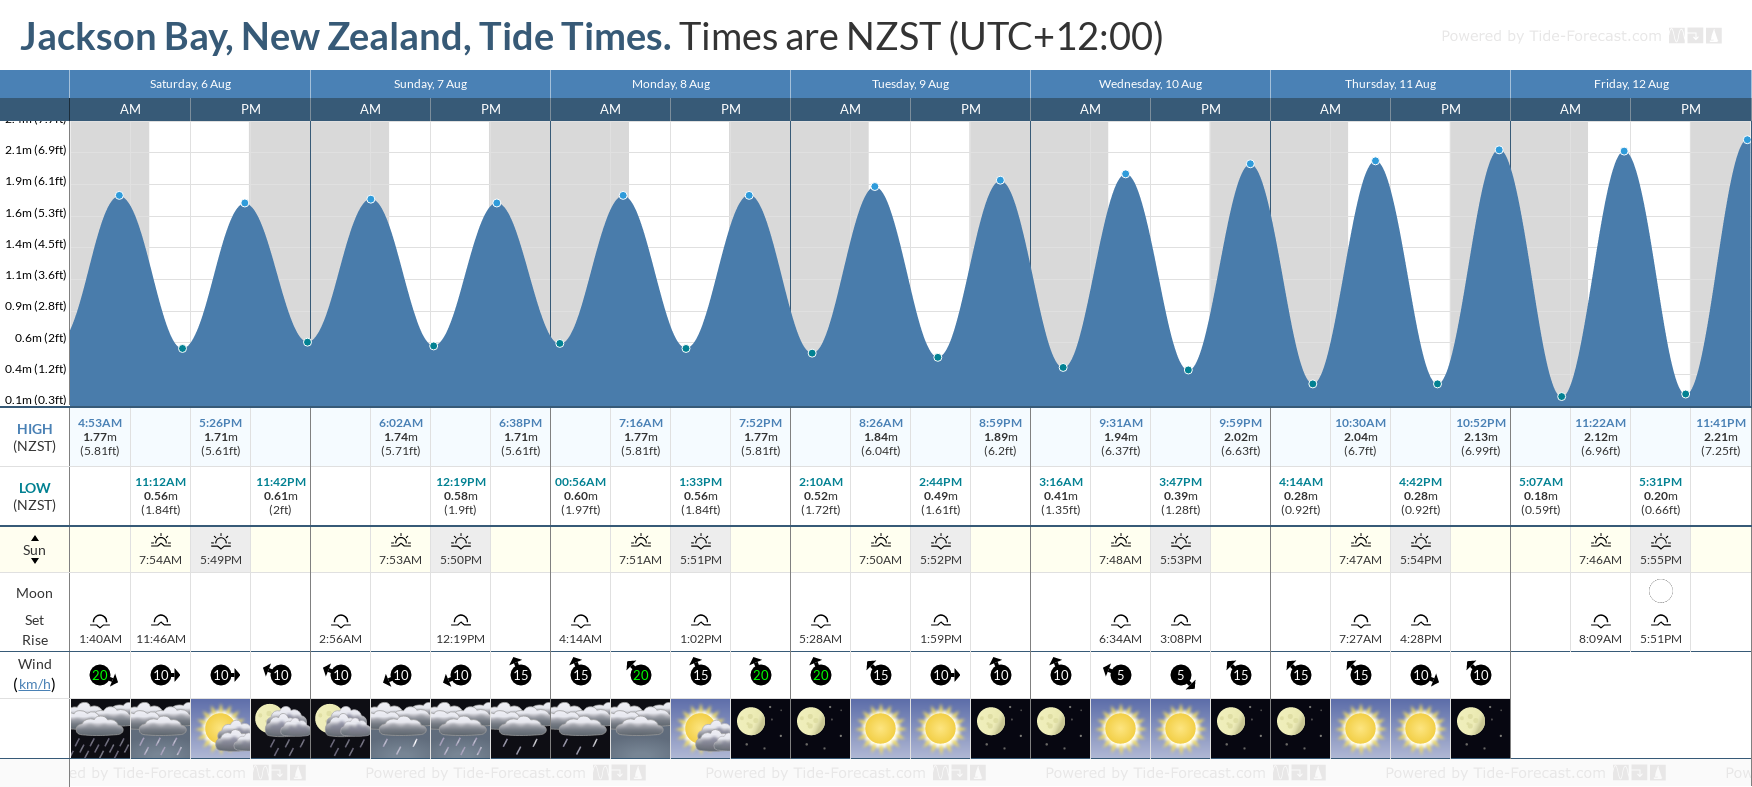 Jackson Bay, New Zealand Tide Chart including high and low tide tide times for the next 7 days